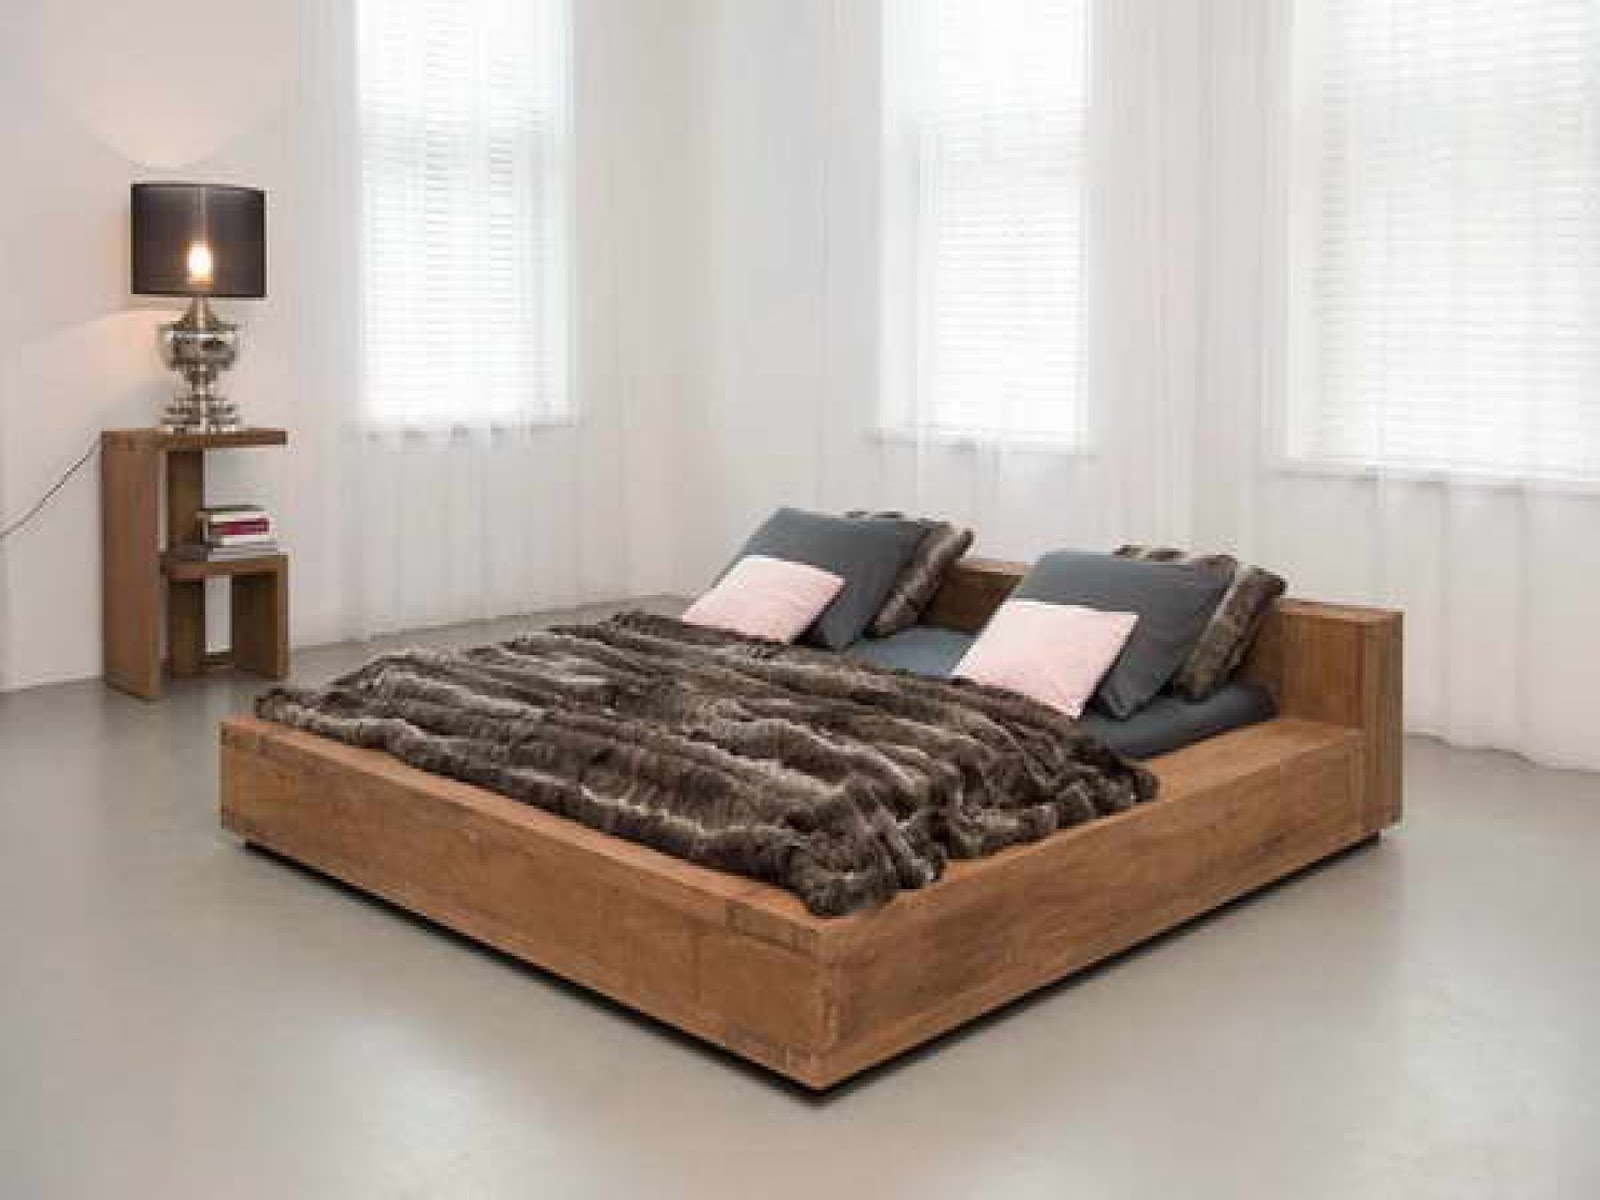 Futuristic Low Profile Bed Frame Collection